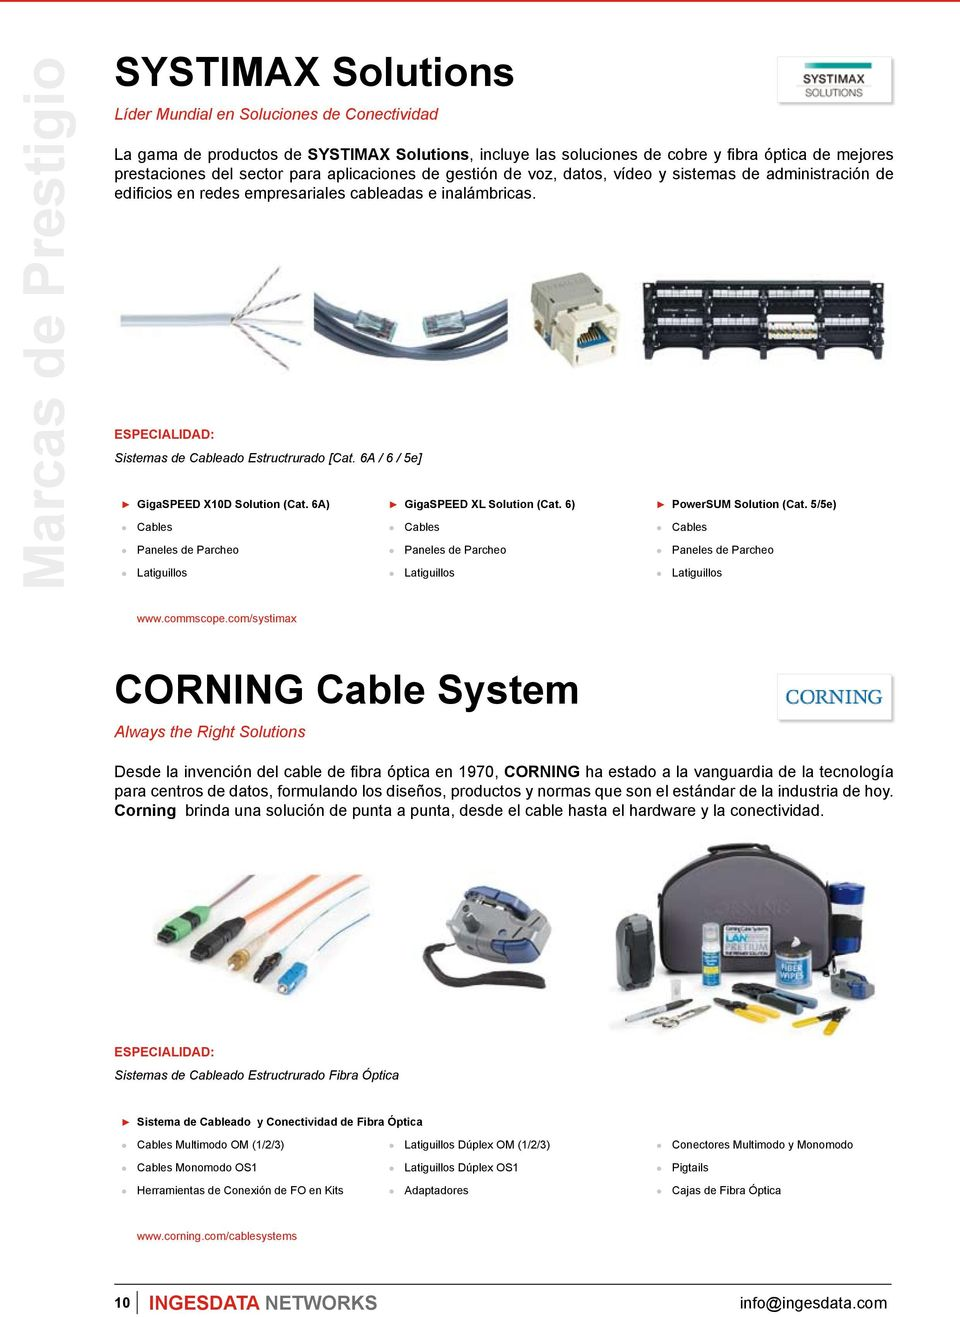 6A / 6 / 5e] GigaSPEED X10D Solution (Cat. 6A) GigaSPEED XL Solution (Cat. 6) Cables Paneles de Parcheo Latiguillos Cables Paneles de Parcheo Latiguillos PowerSUM Solution (Cat.